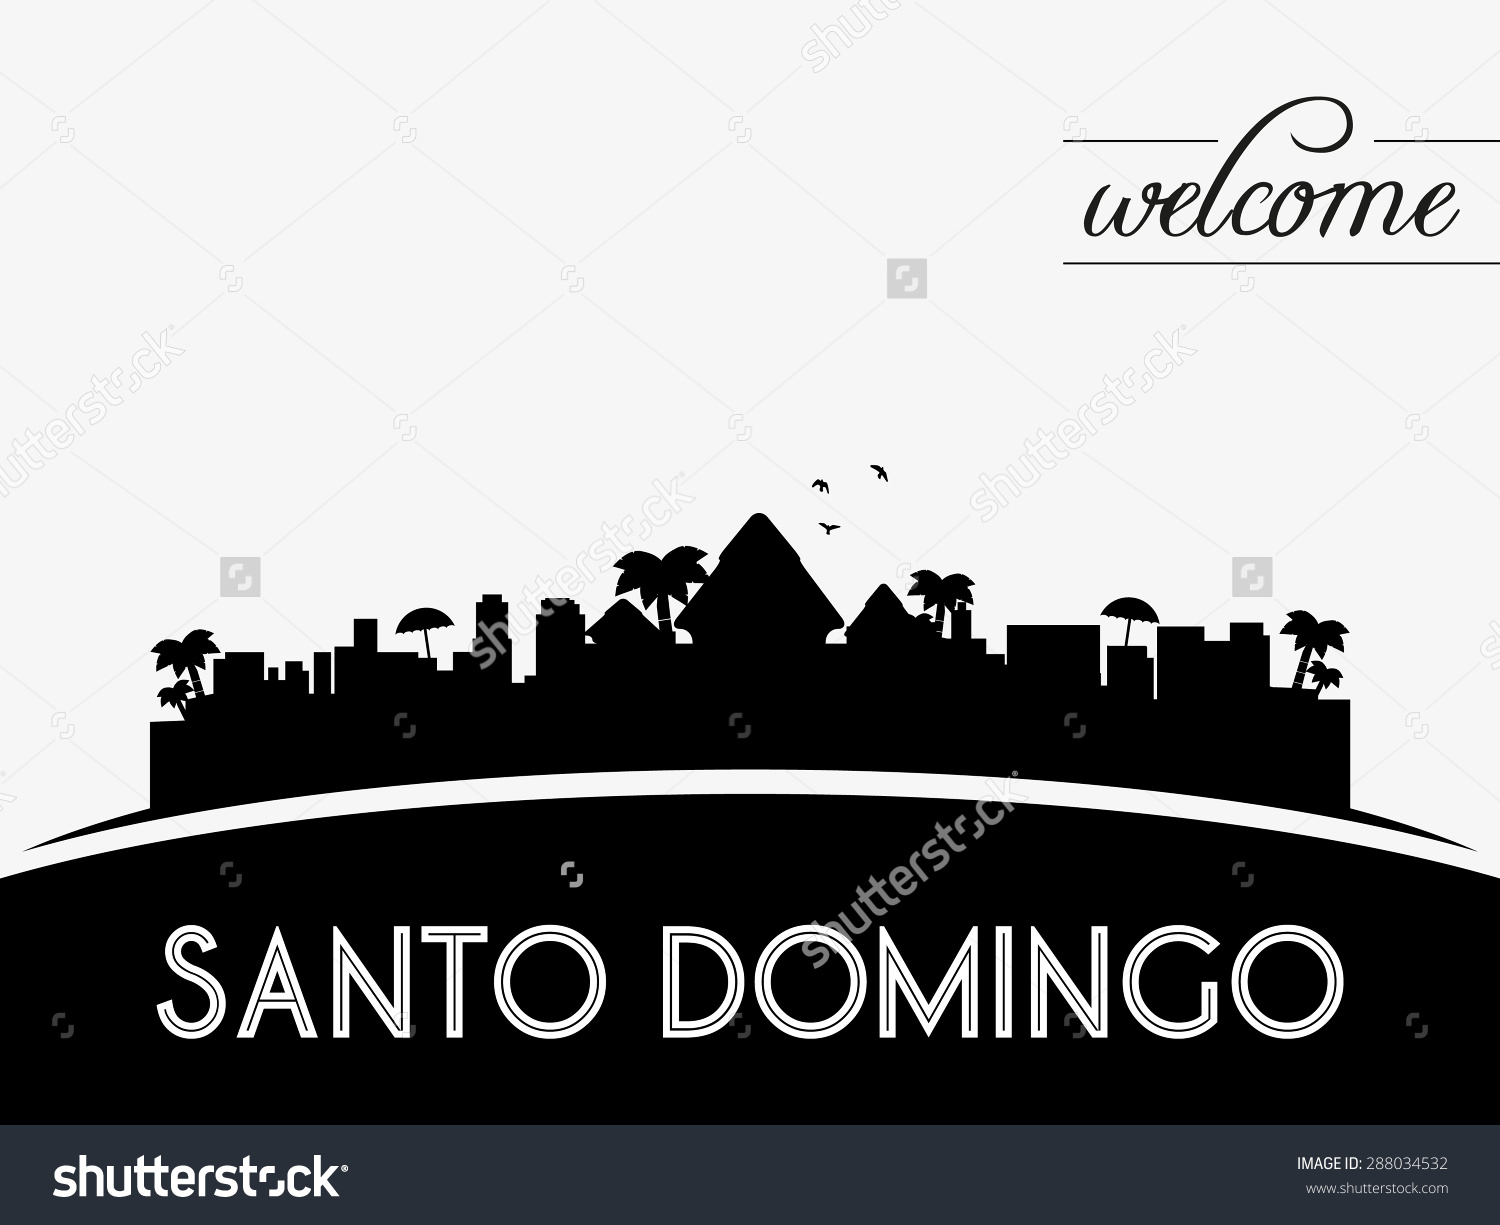 Santo Domingo Dominican Republic Skyline Silhouette Stock Vector.